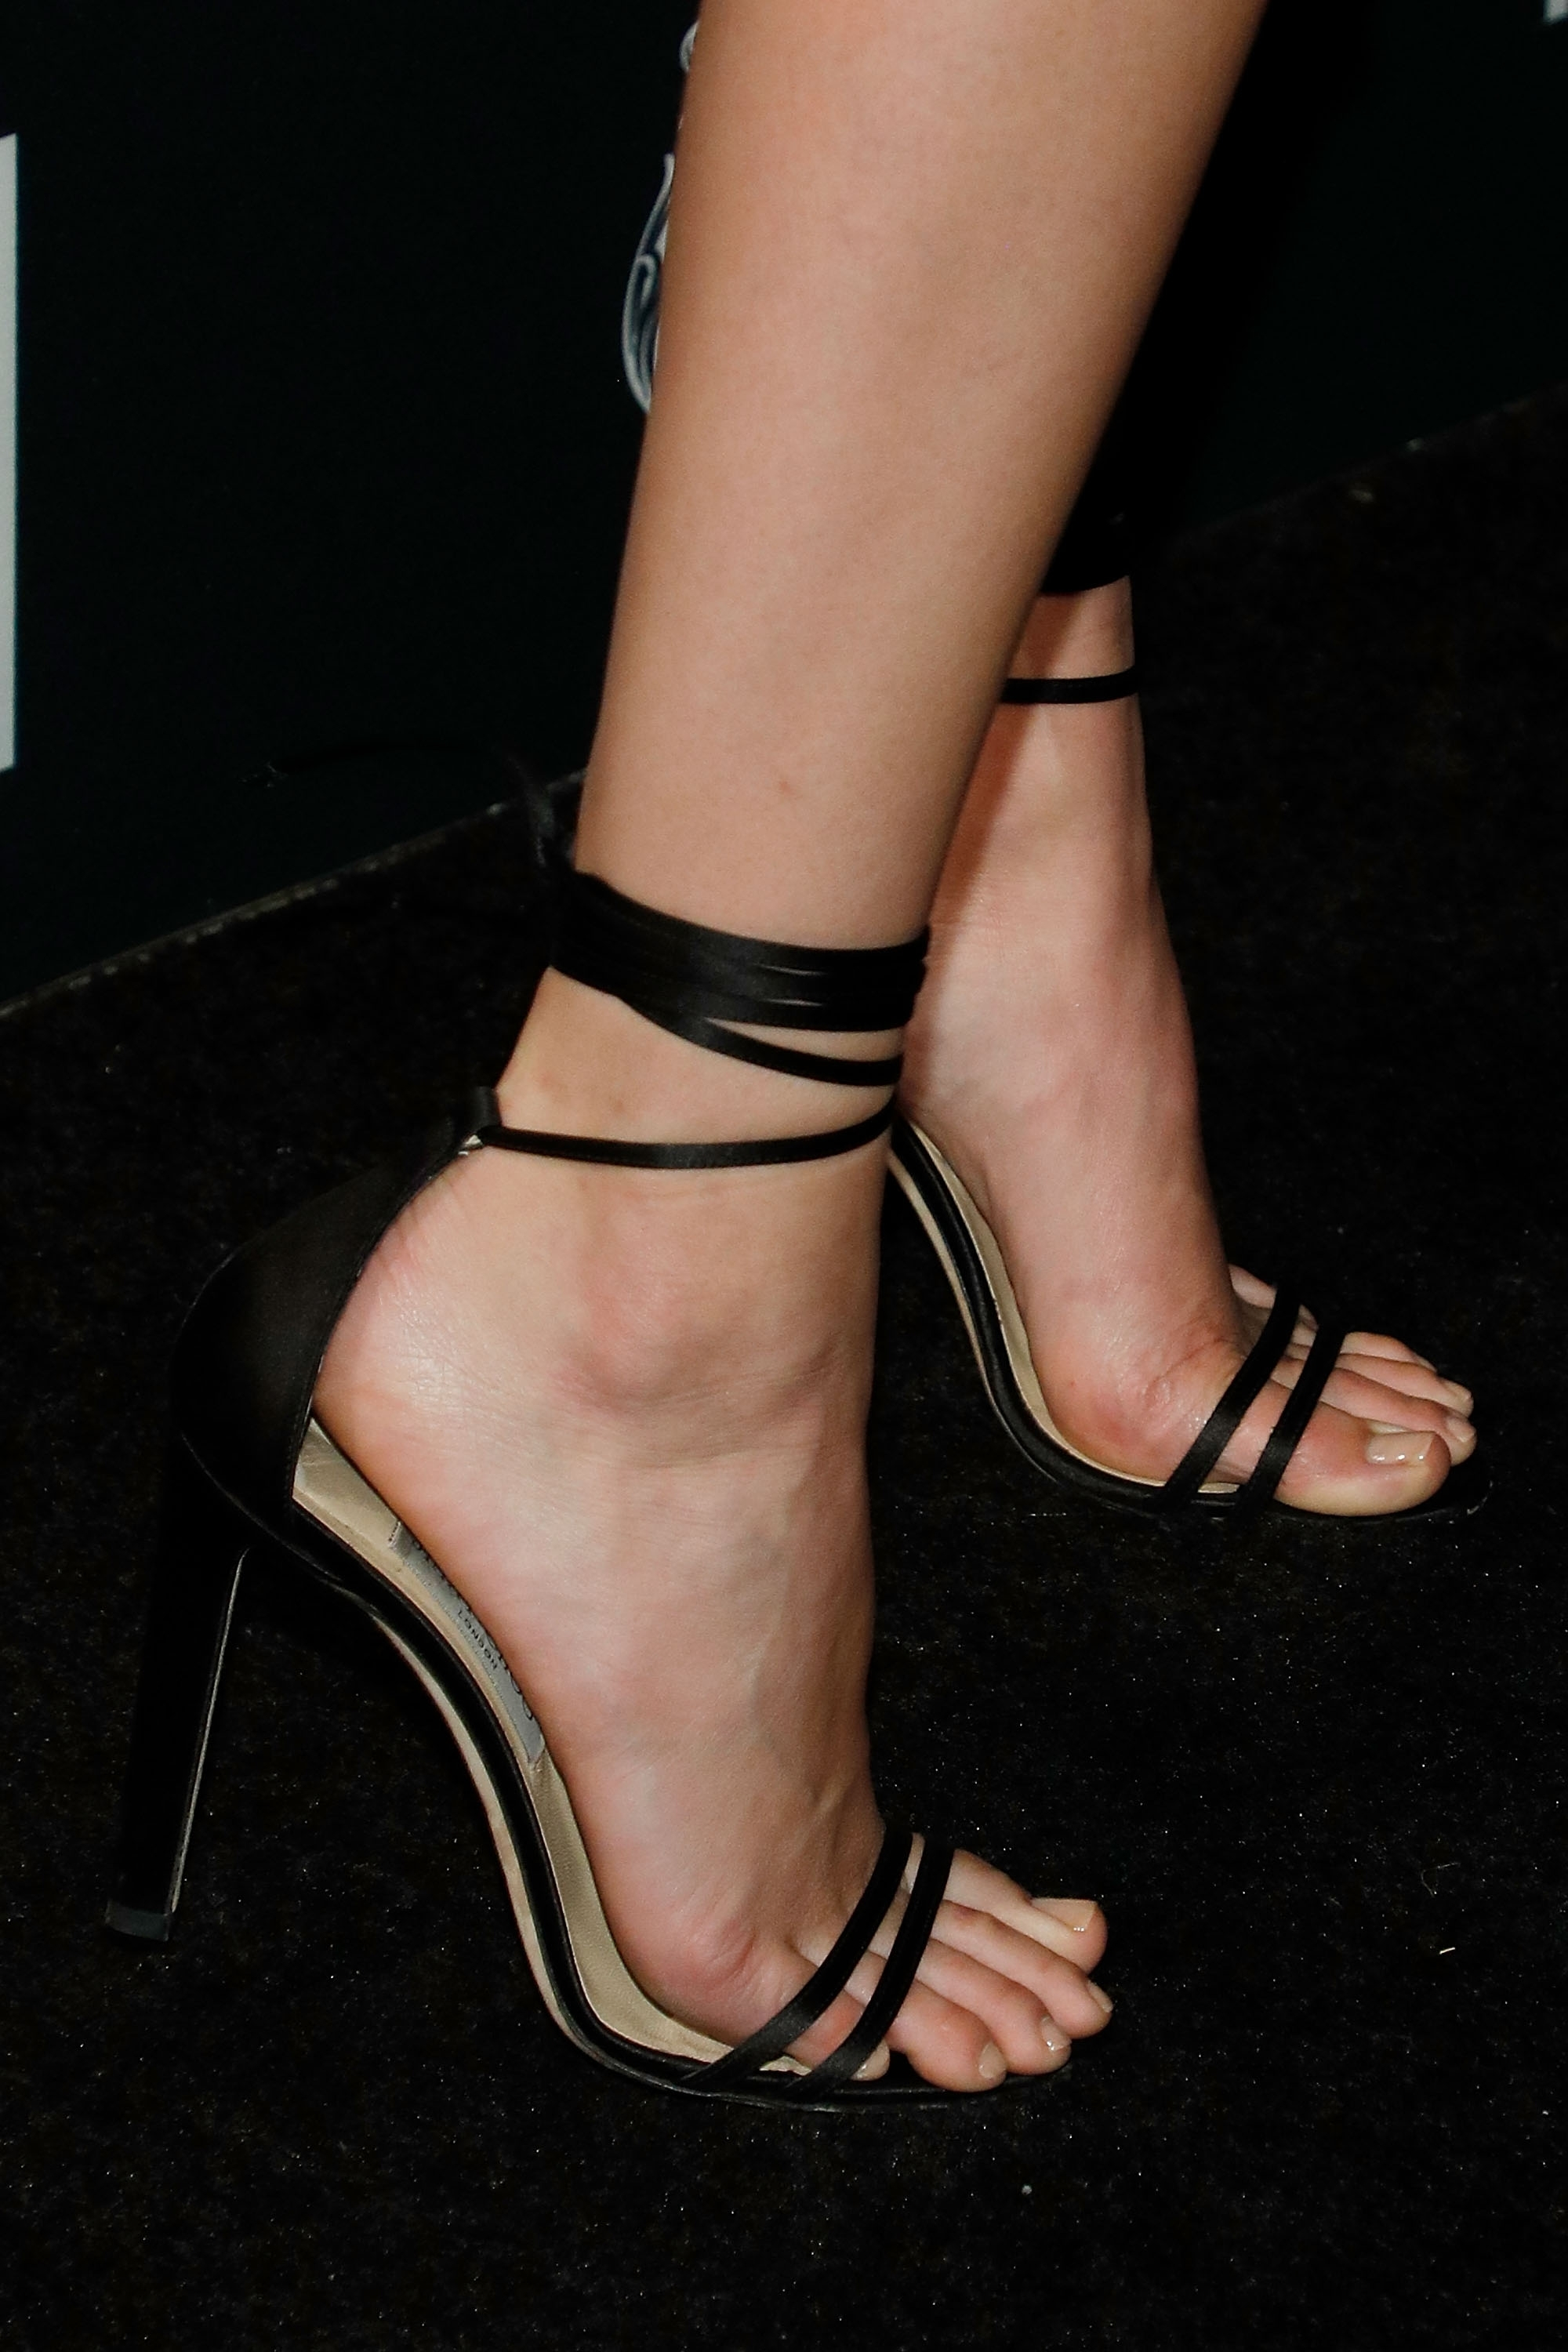 Feet Kendall Jenner nude (23 foto and video), Pussy, Leaked, Selfie, legs 2006